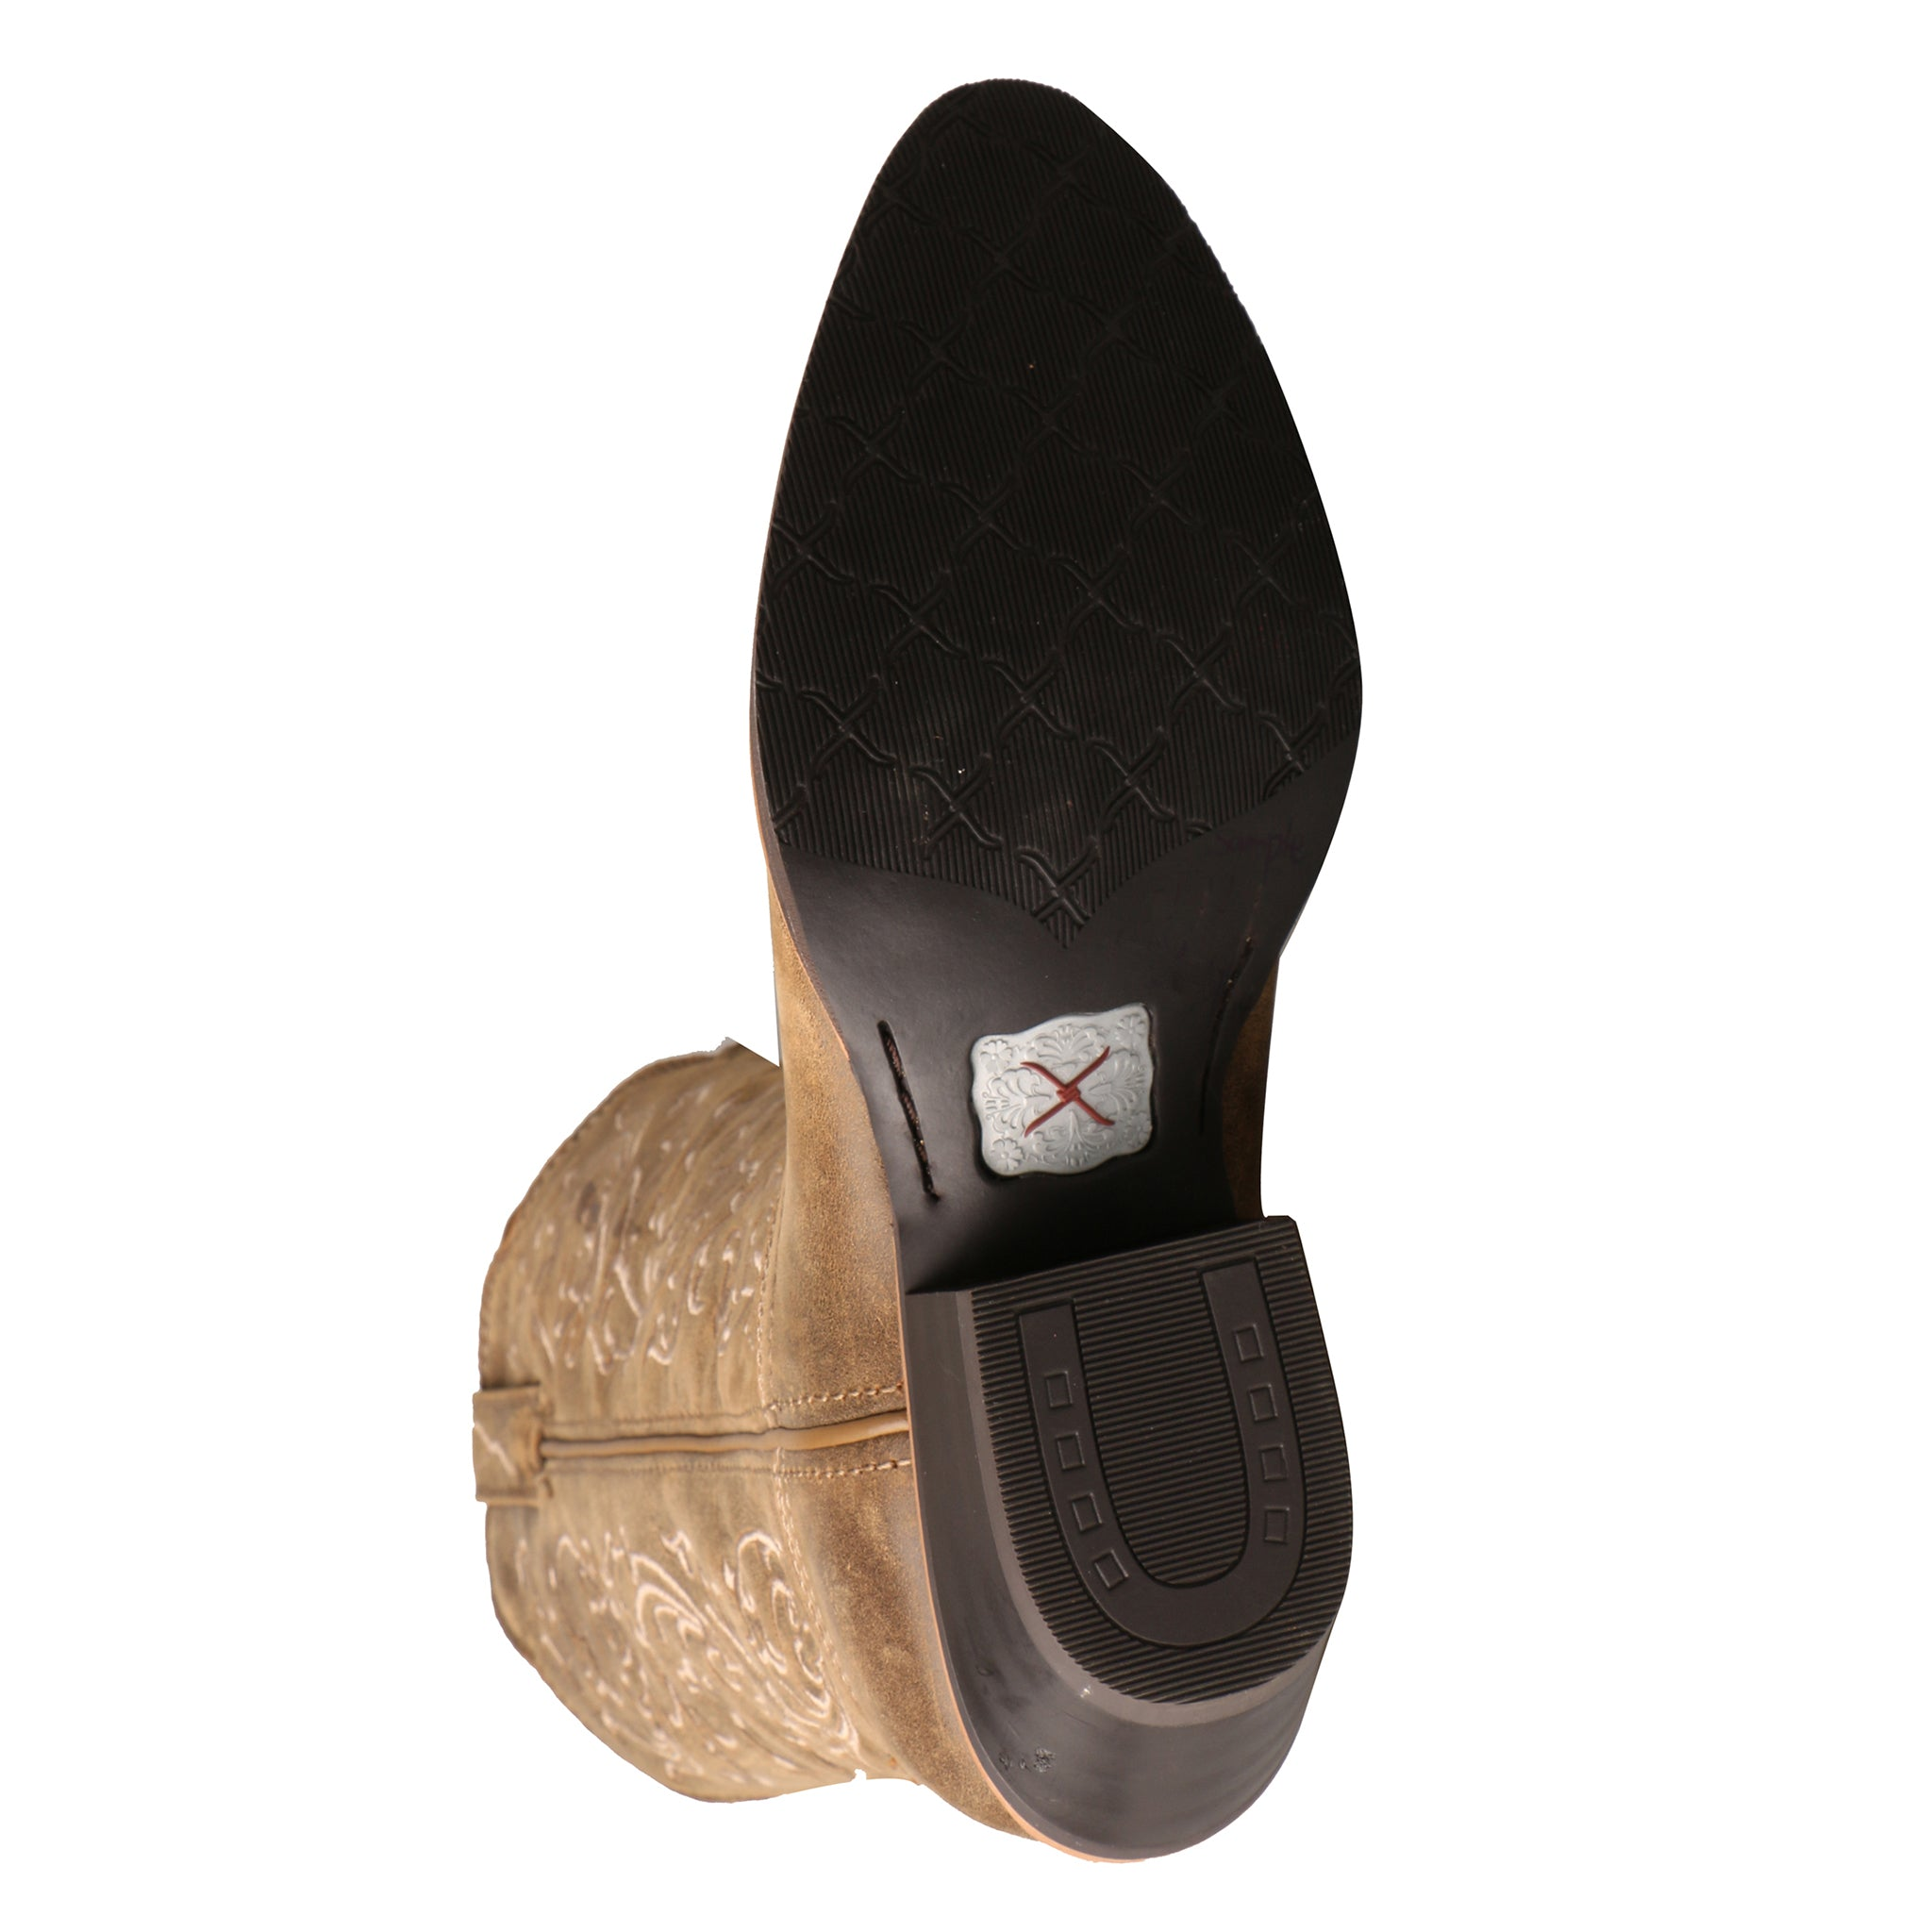 Picture of the bottom sole of the Women's Twisted X Western Boot WWT0025